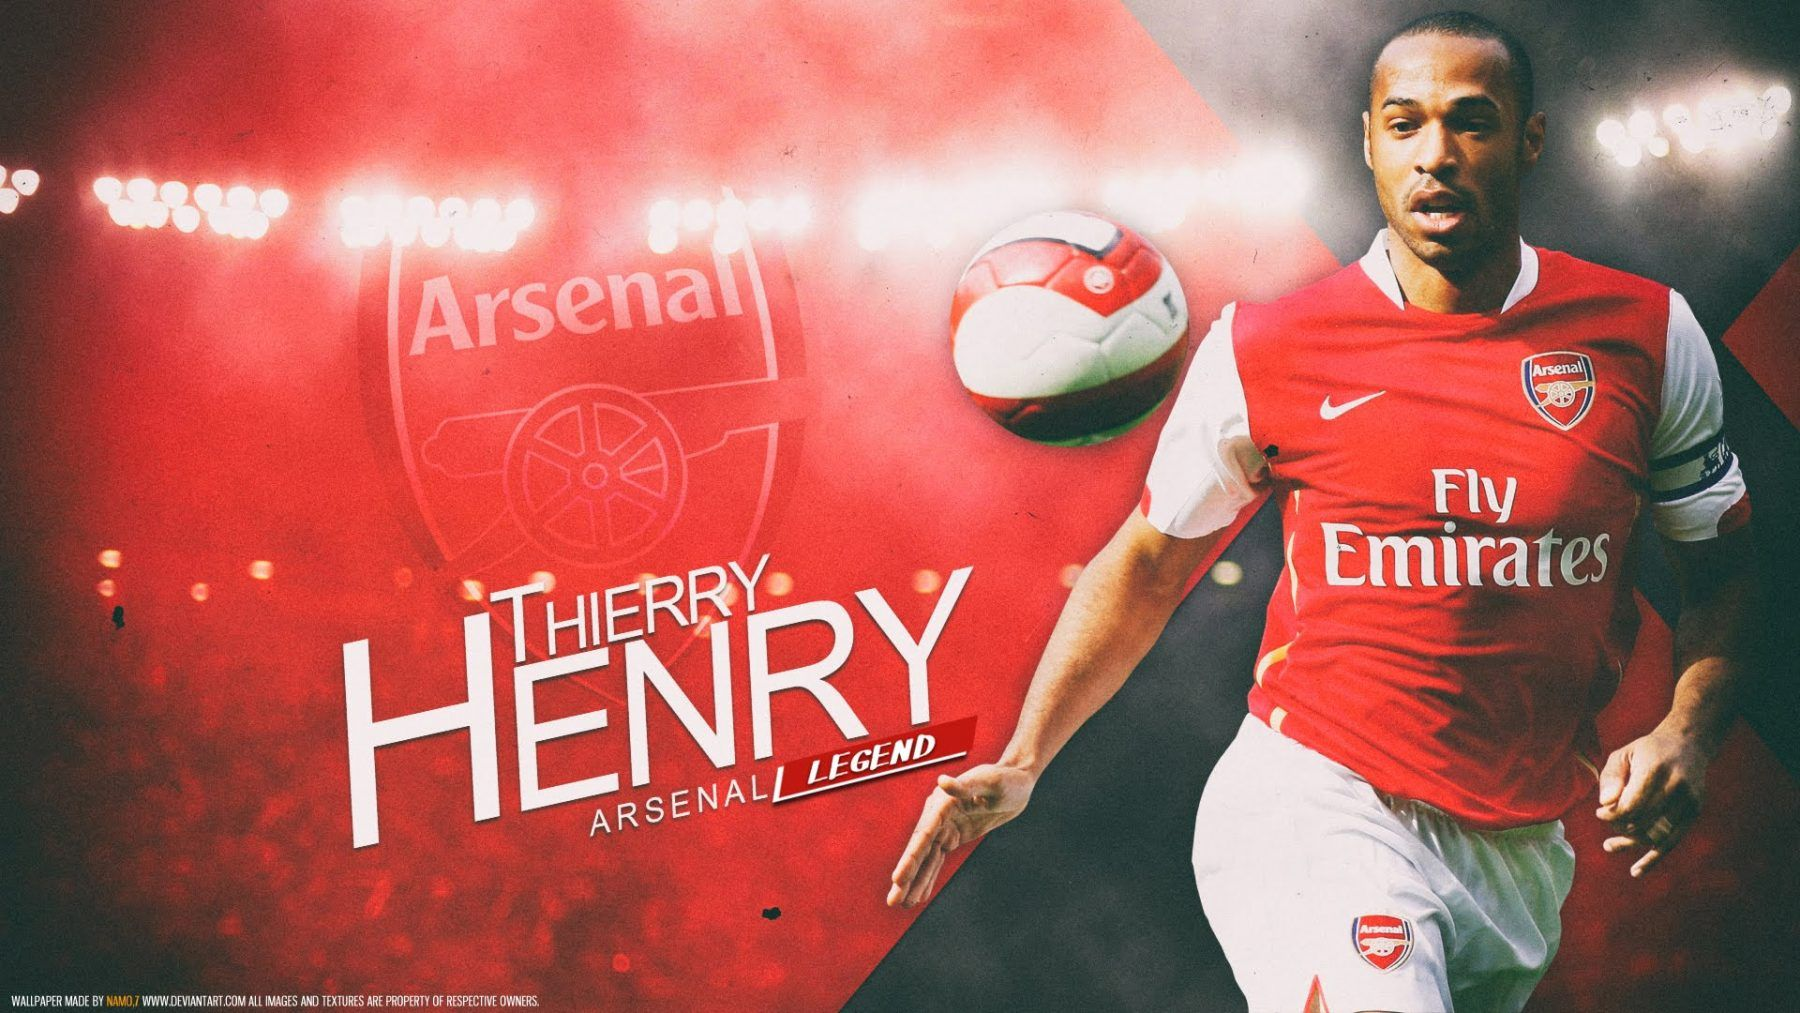 Cool thierry henry wallpaper